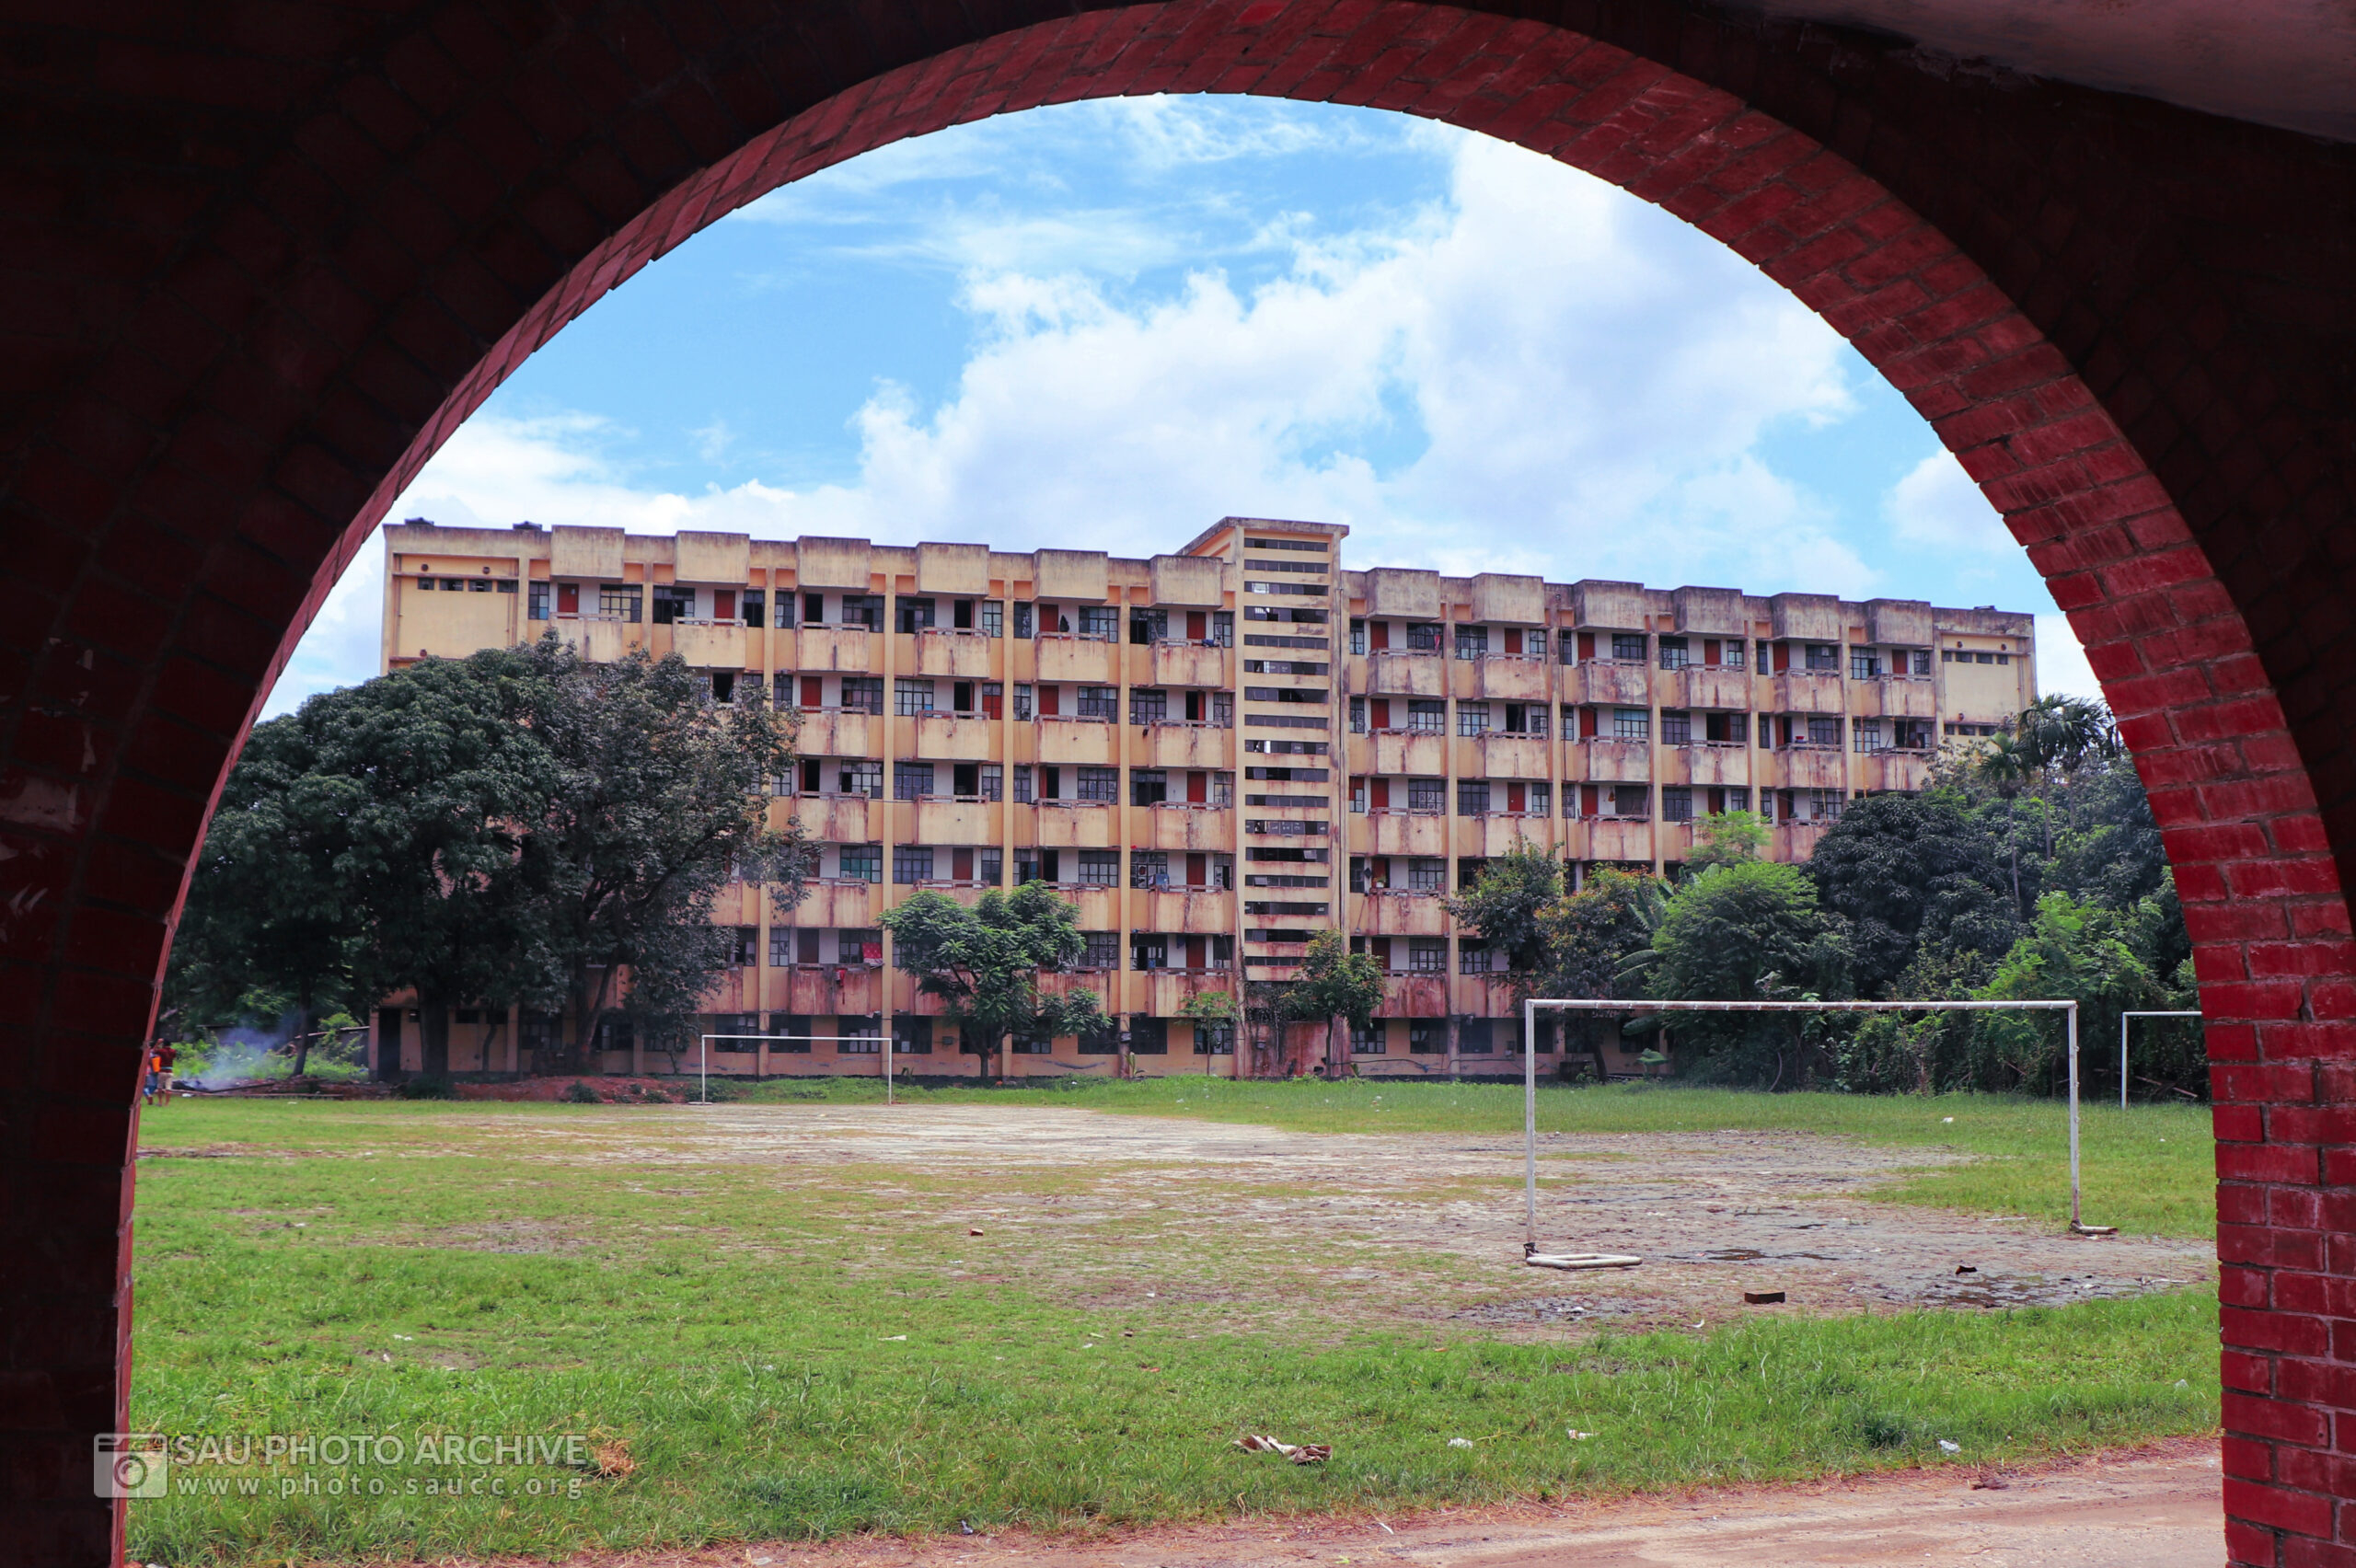 An Architectural photo is captured by Md. Nazmus Sakib Anik at Sher-e-Bangla Agricultural University titled One Hall to Another